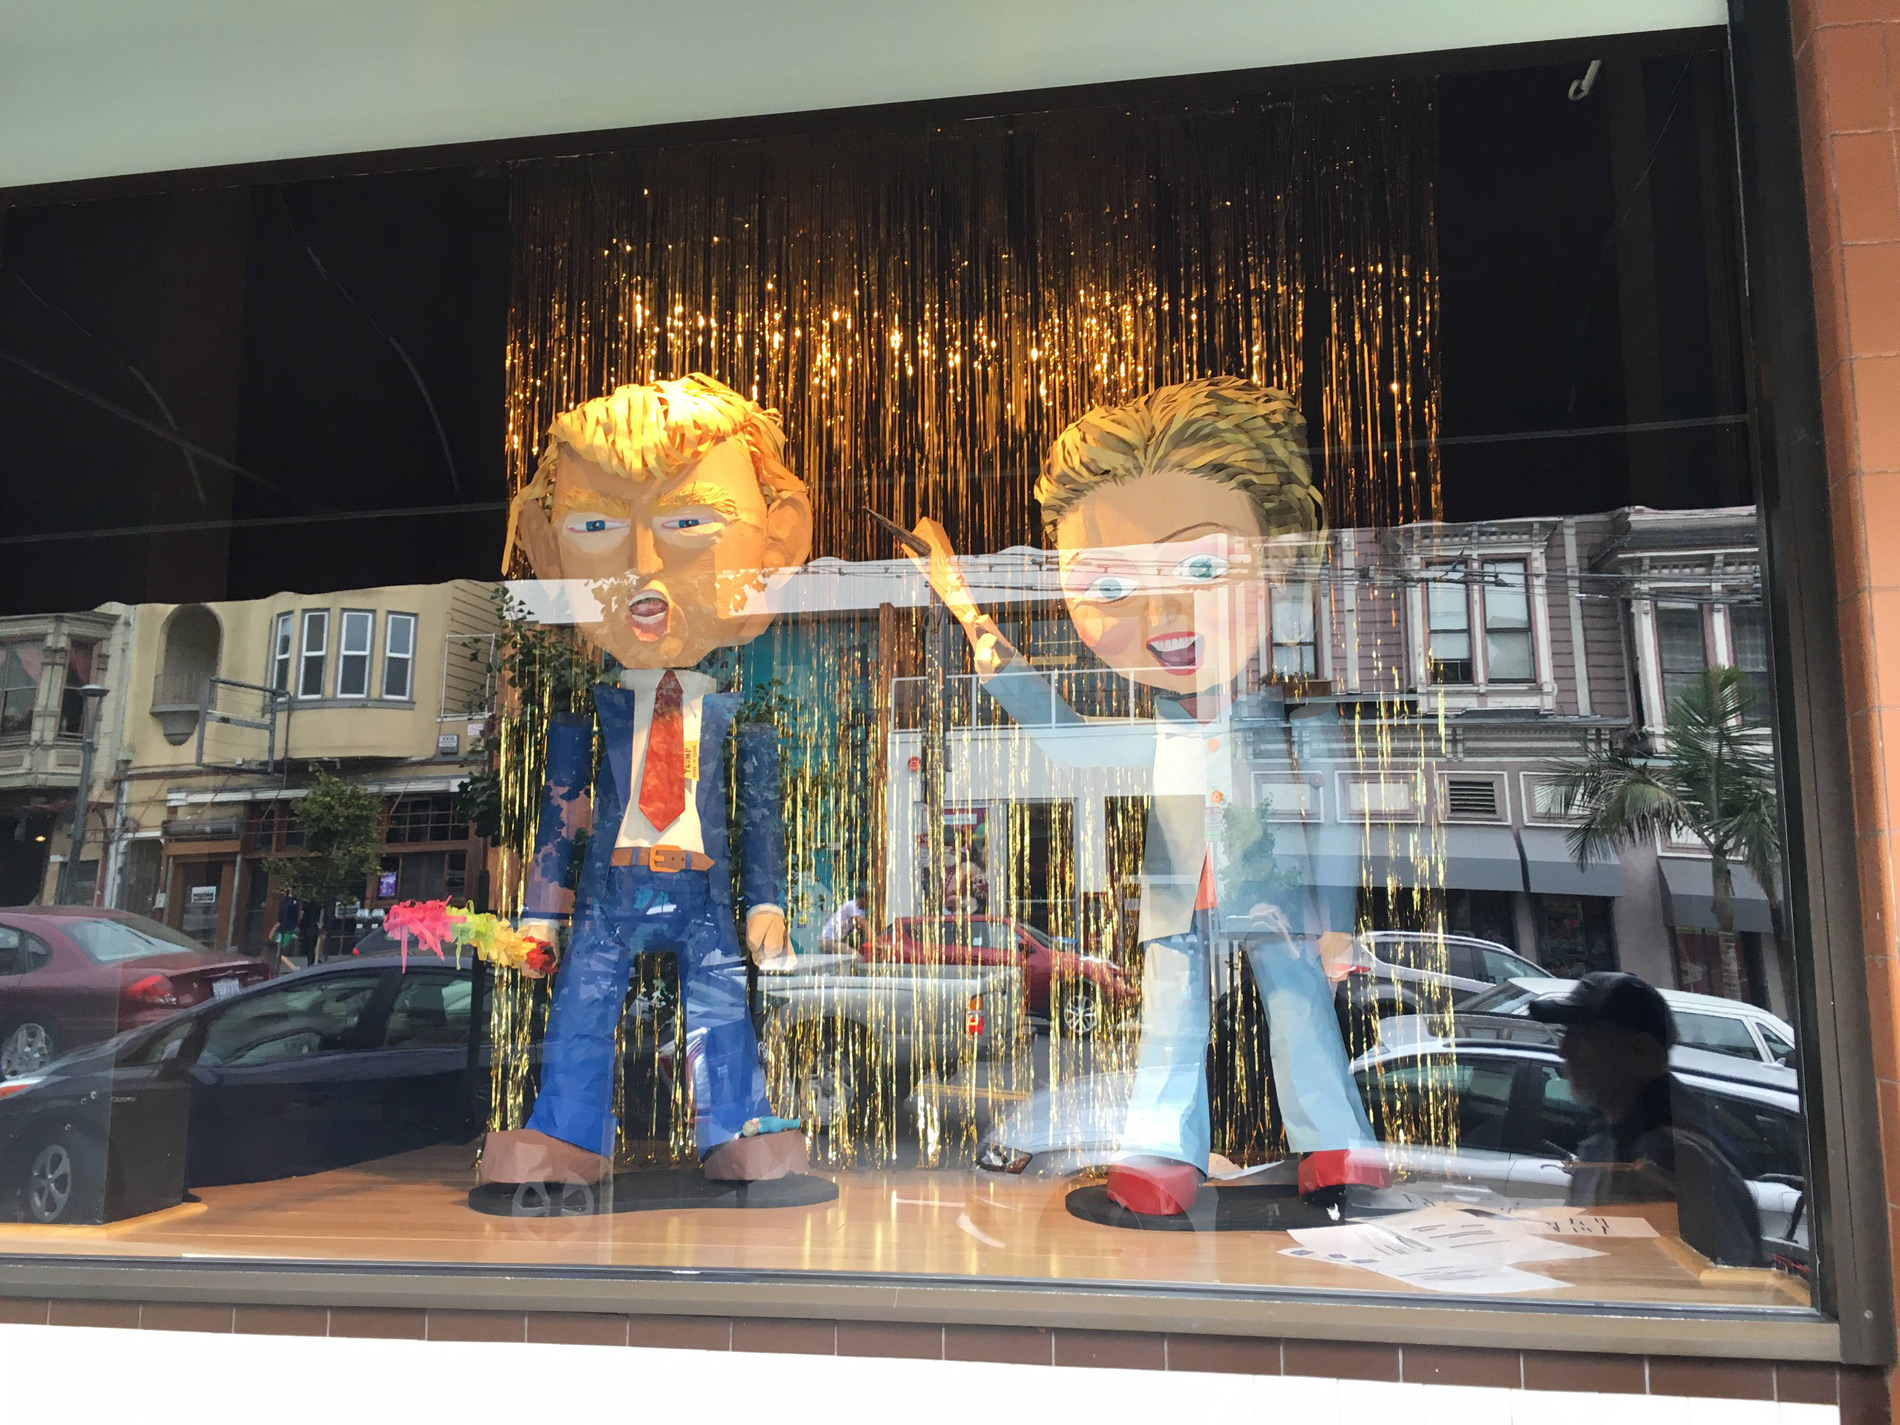 This must be the scariest Halloween window display ever, with these big puppets representing the president and his opponent.